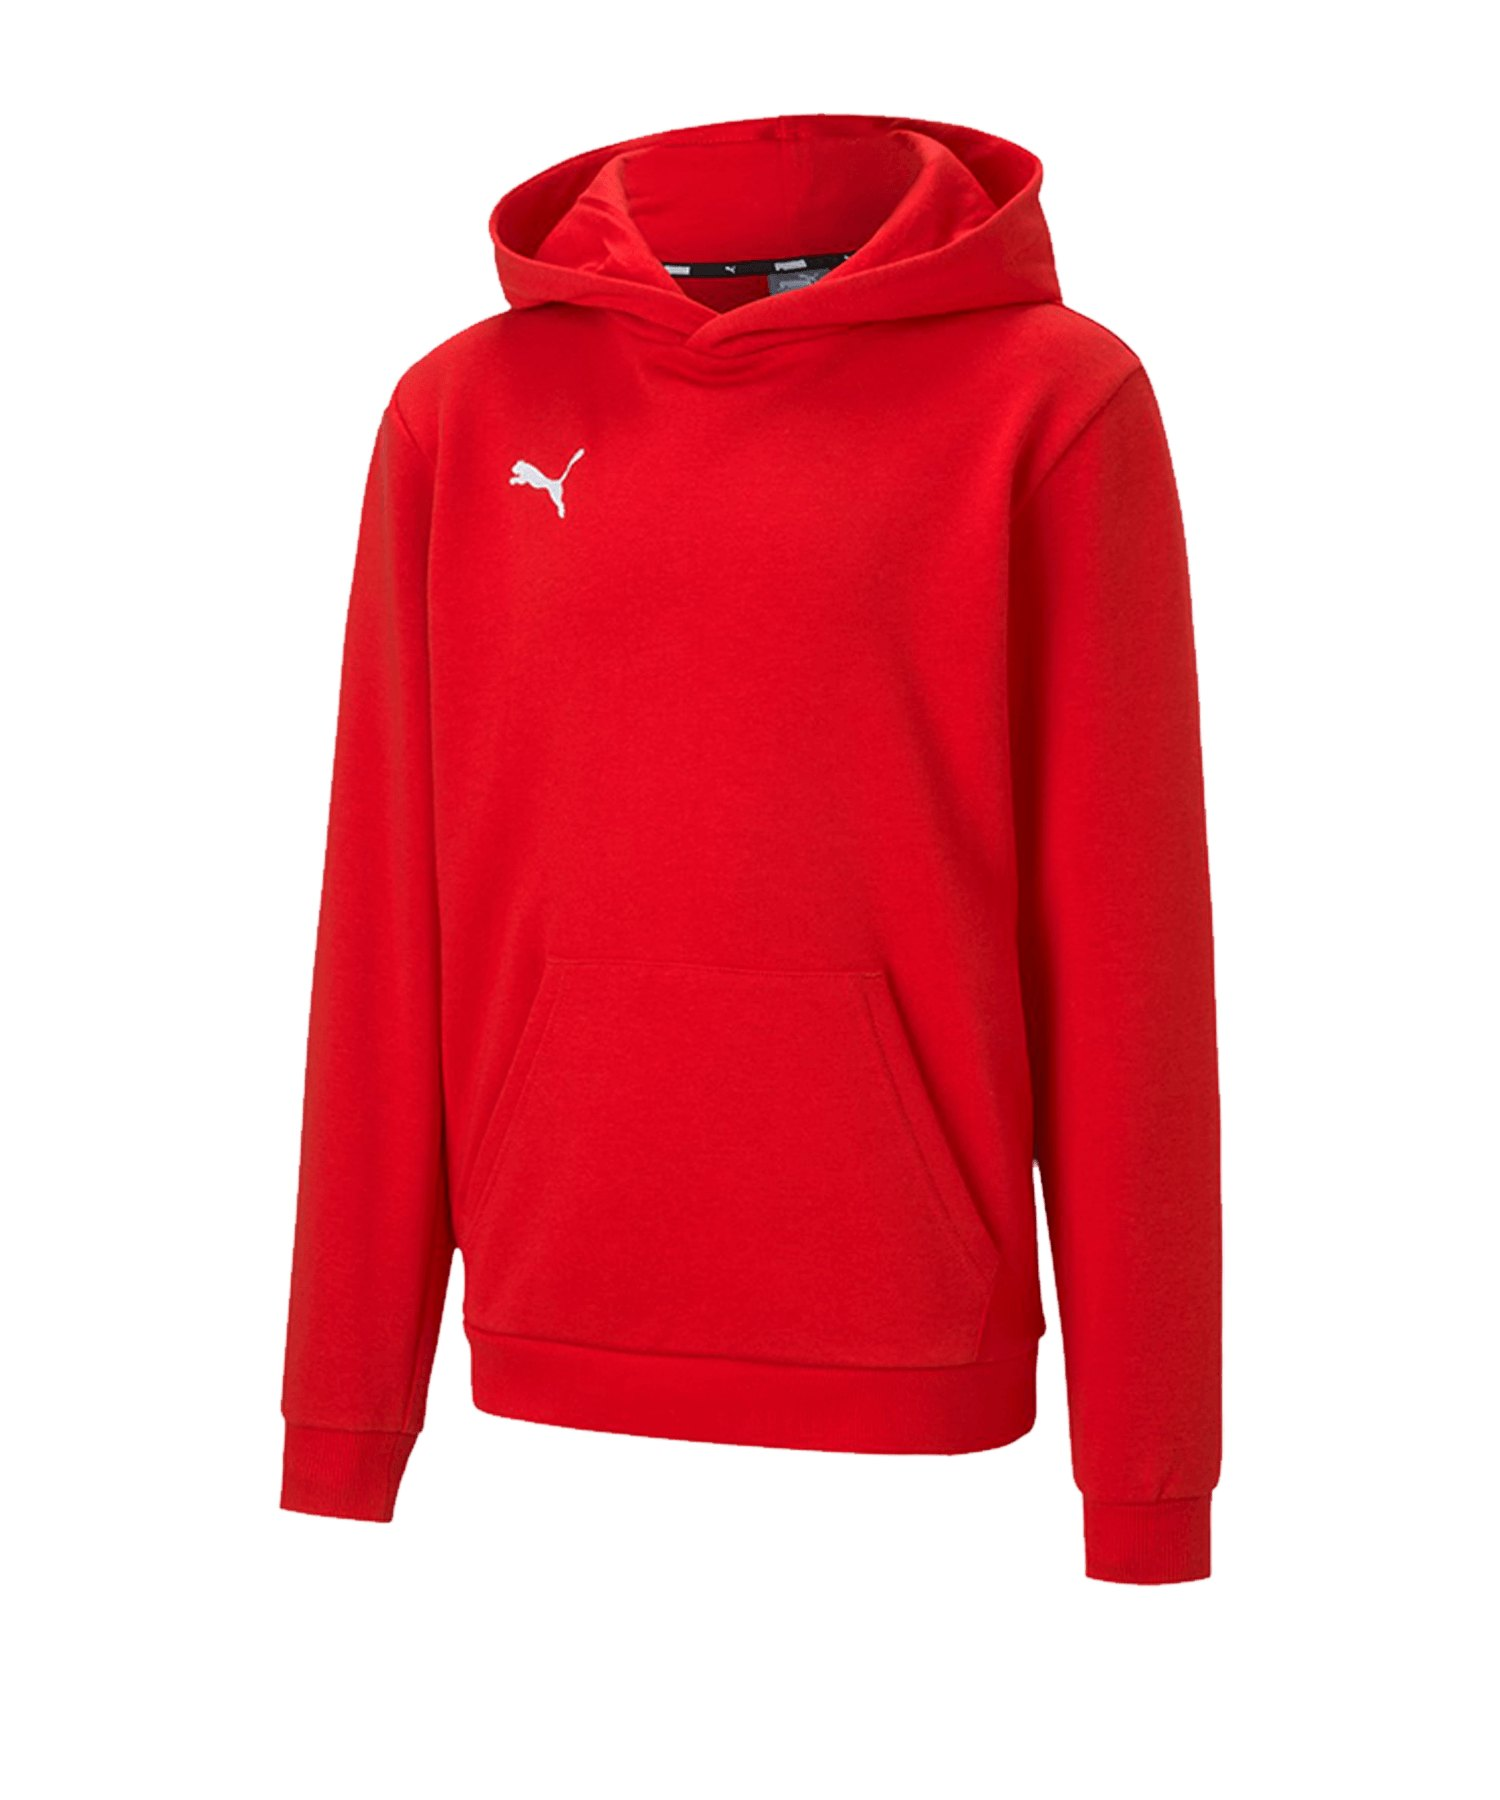 PUMA teamGOAL 23 Casuals Hoody Kids Rot F01 - rot